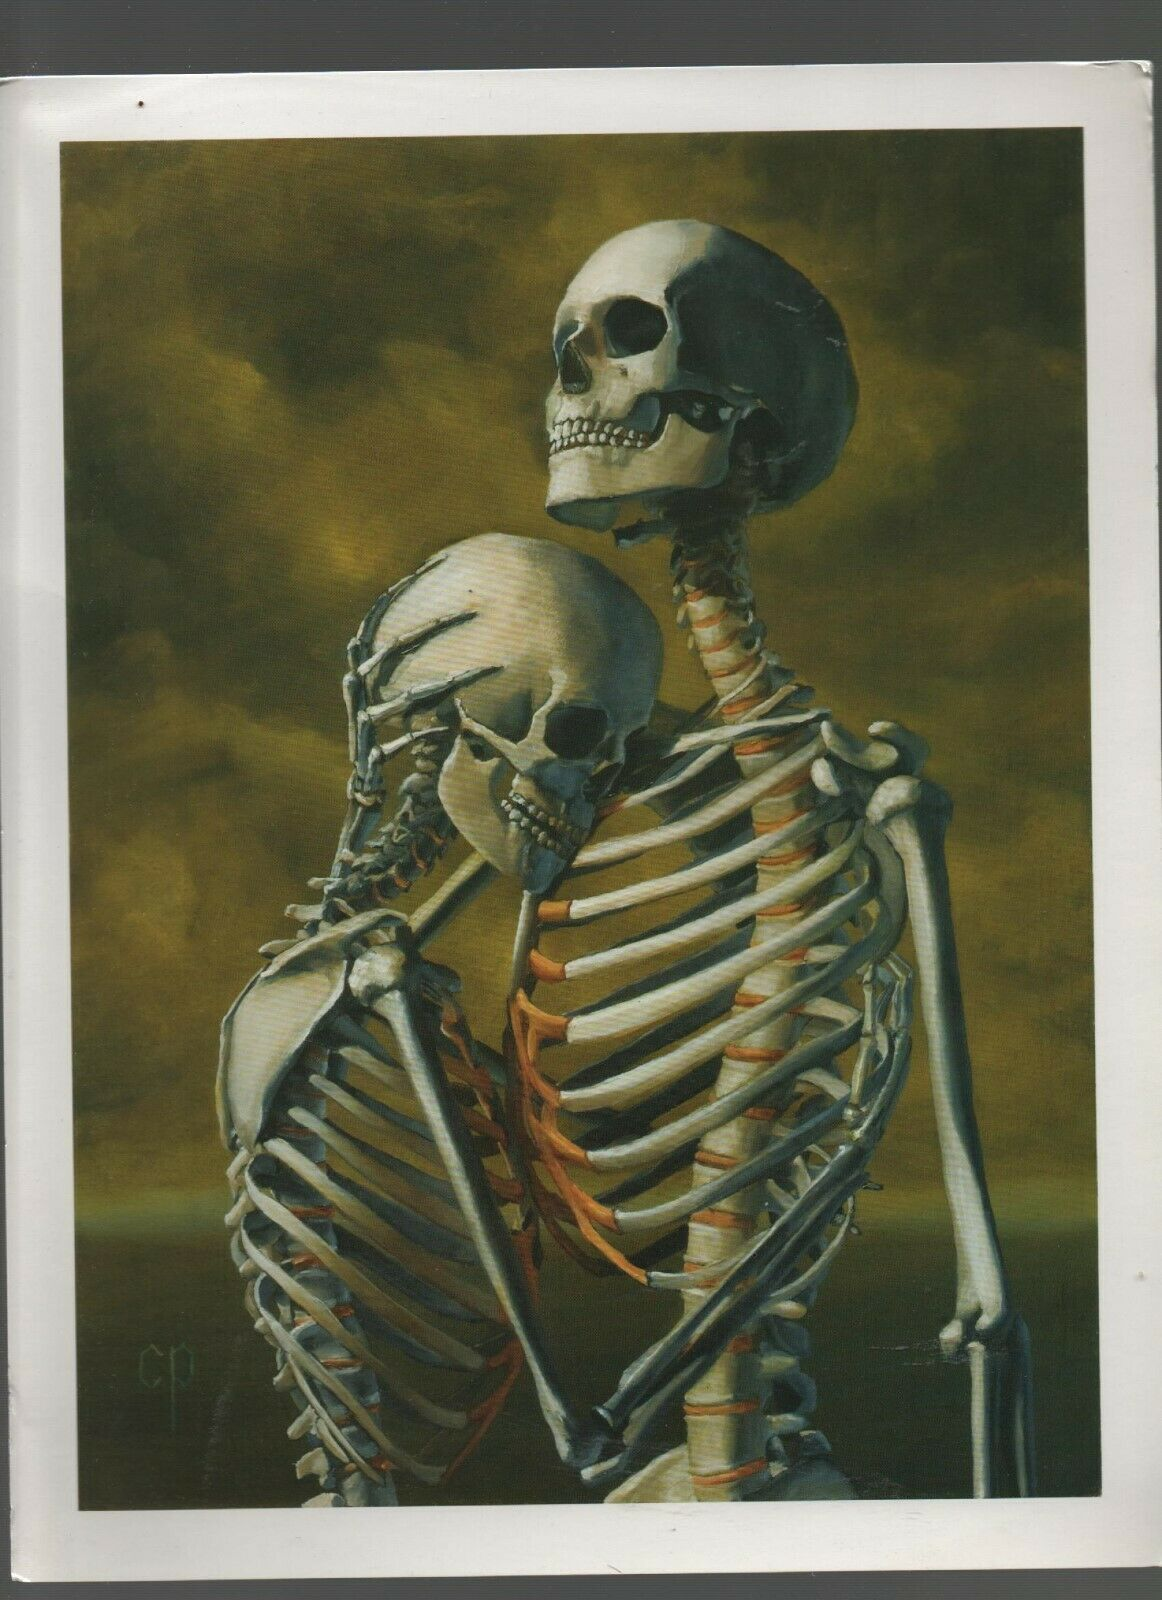 """To Hold You Again"" - Christ Peters New Paintings - Last Rites Gallery Print."